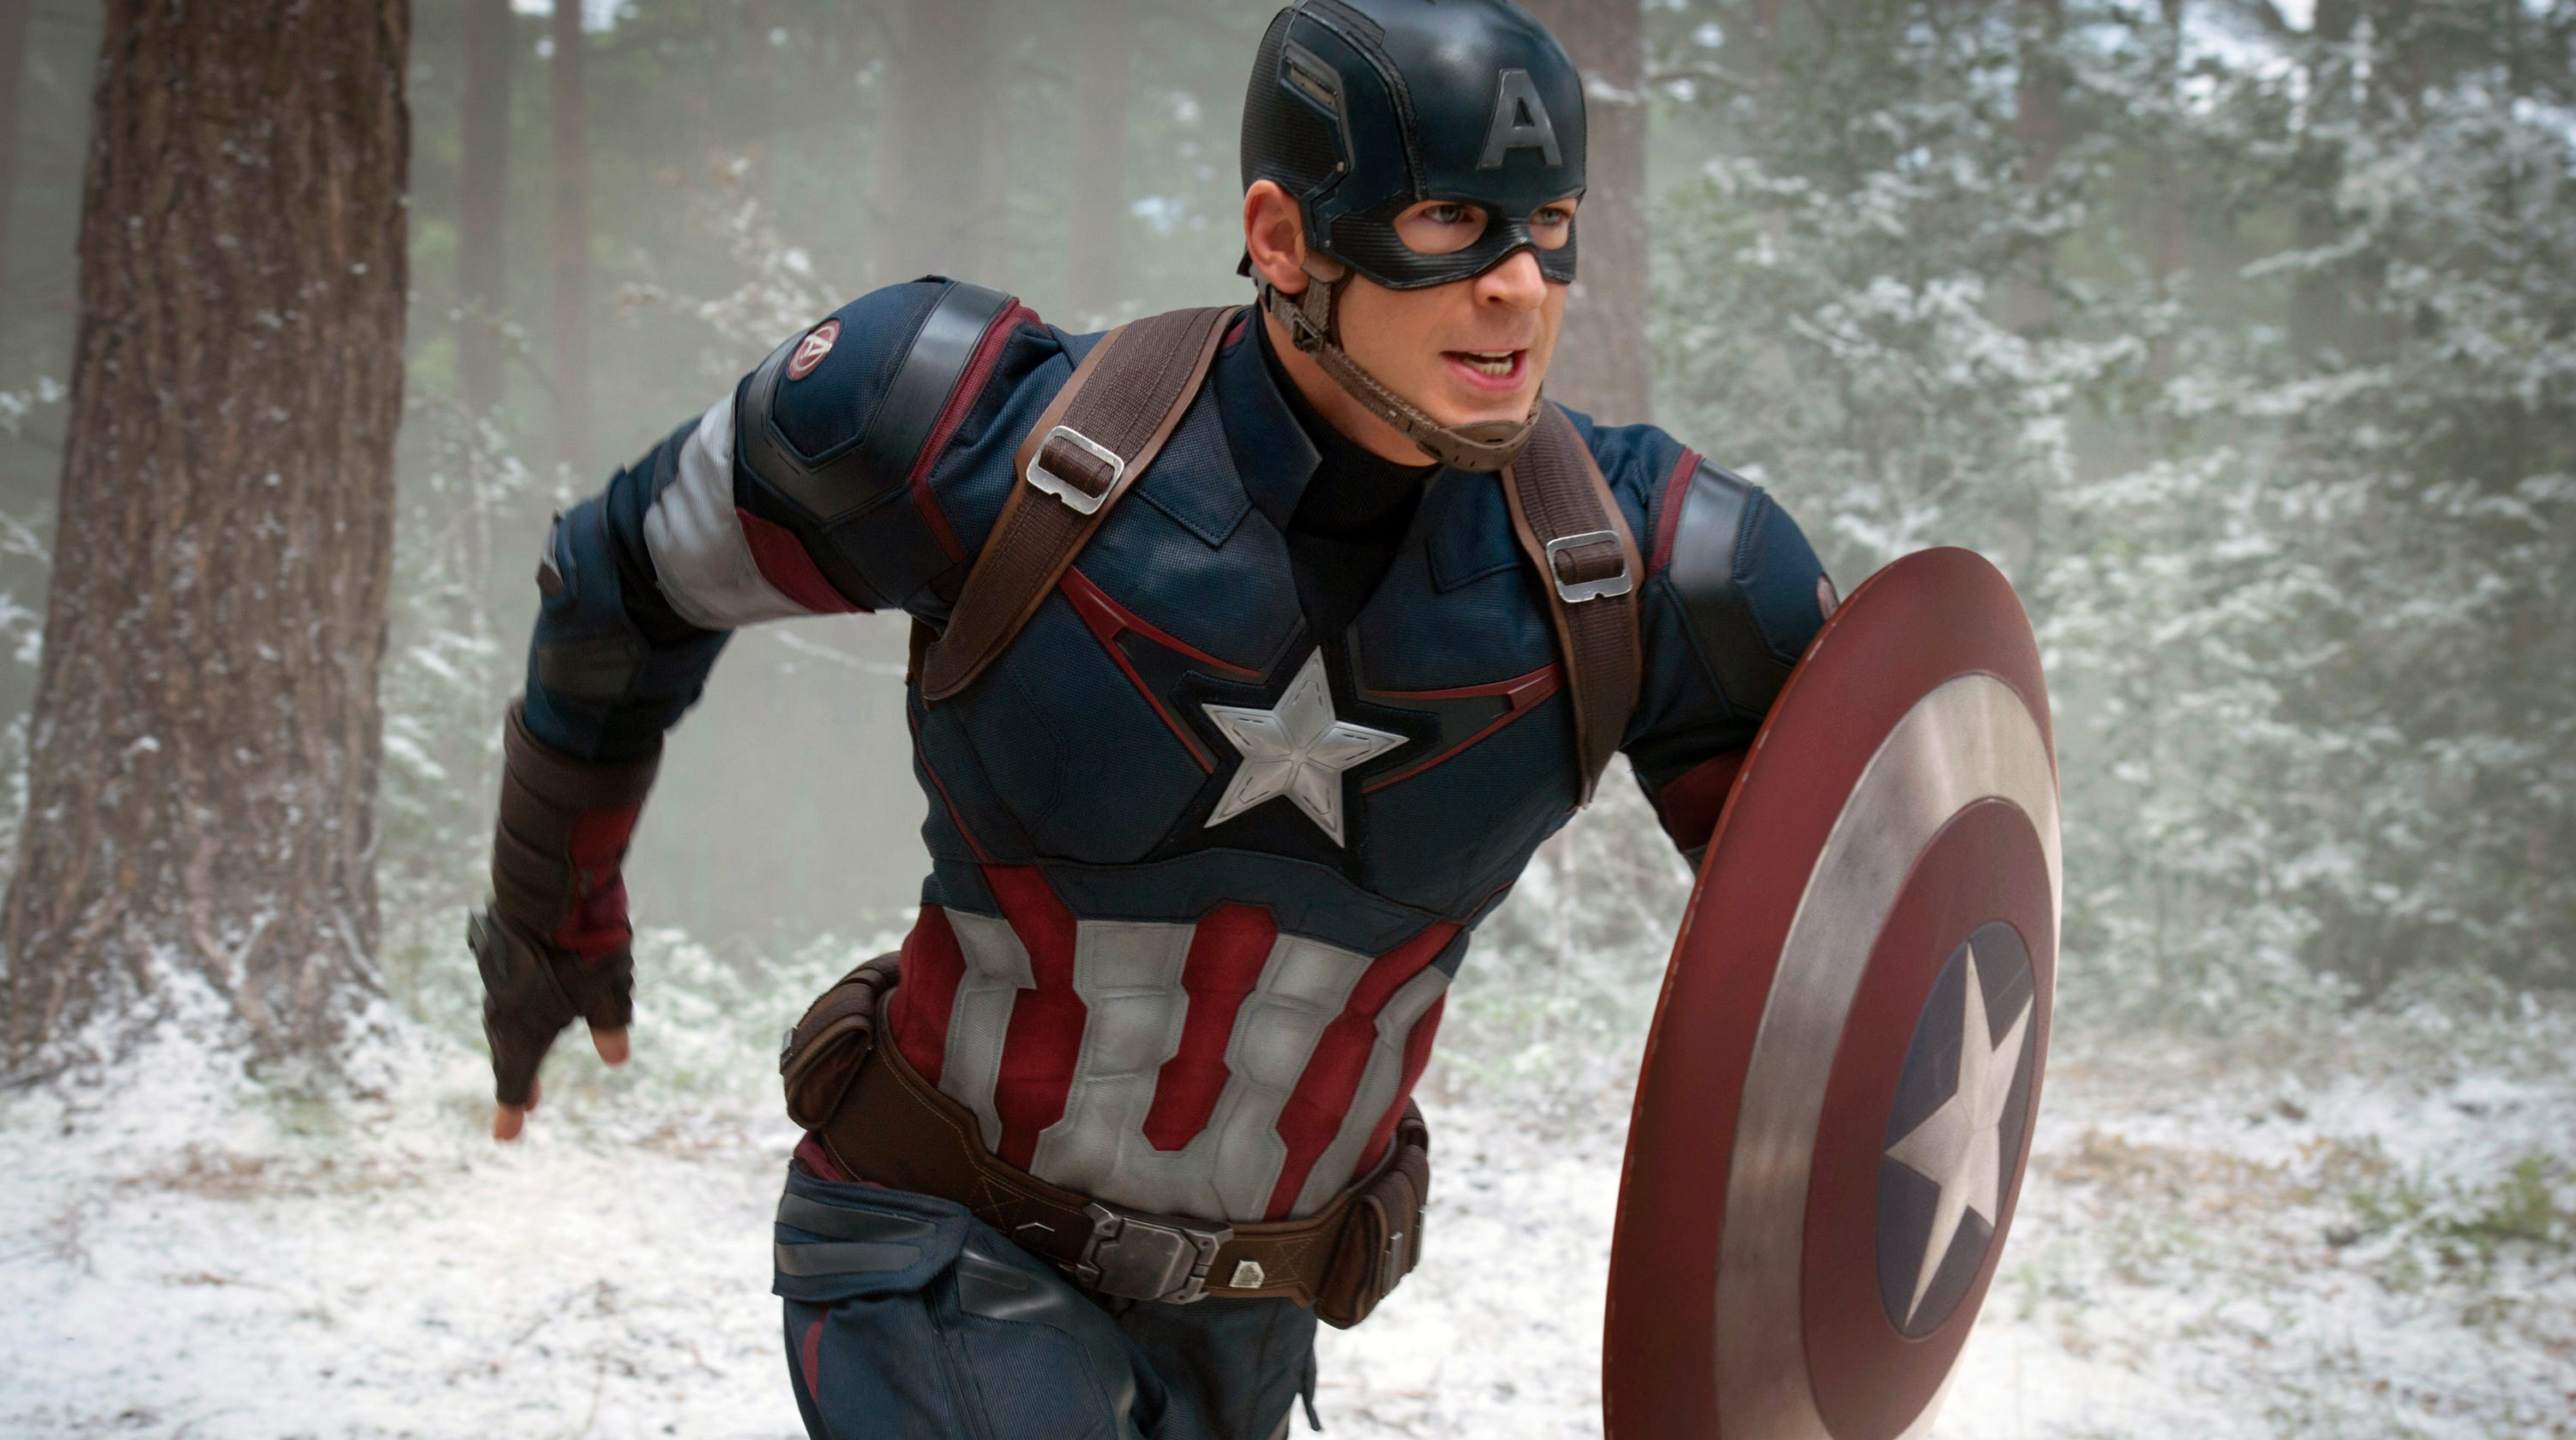 Avengers' director says Chris Evans' not done playing Captain America